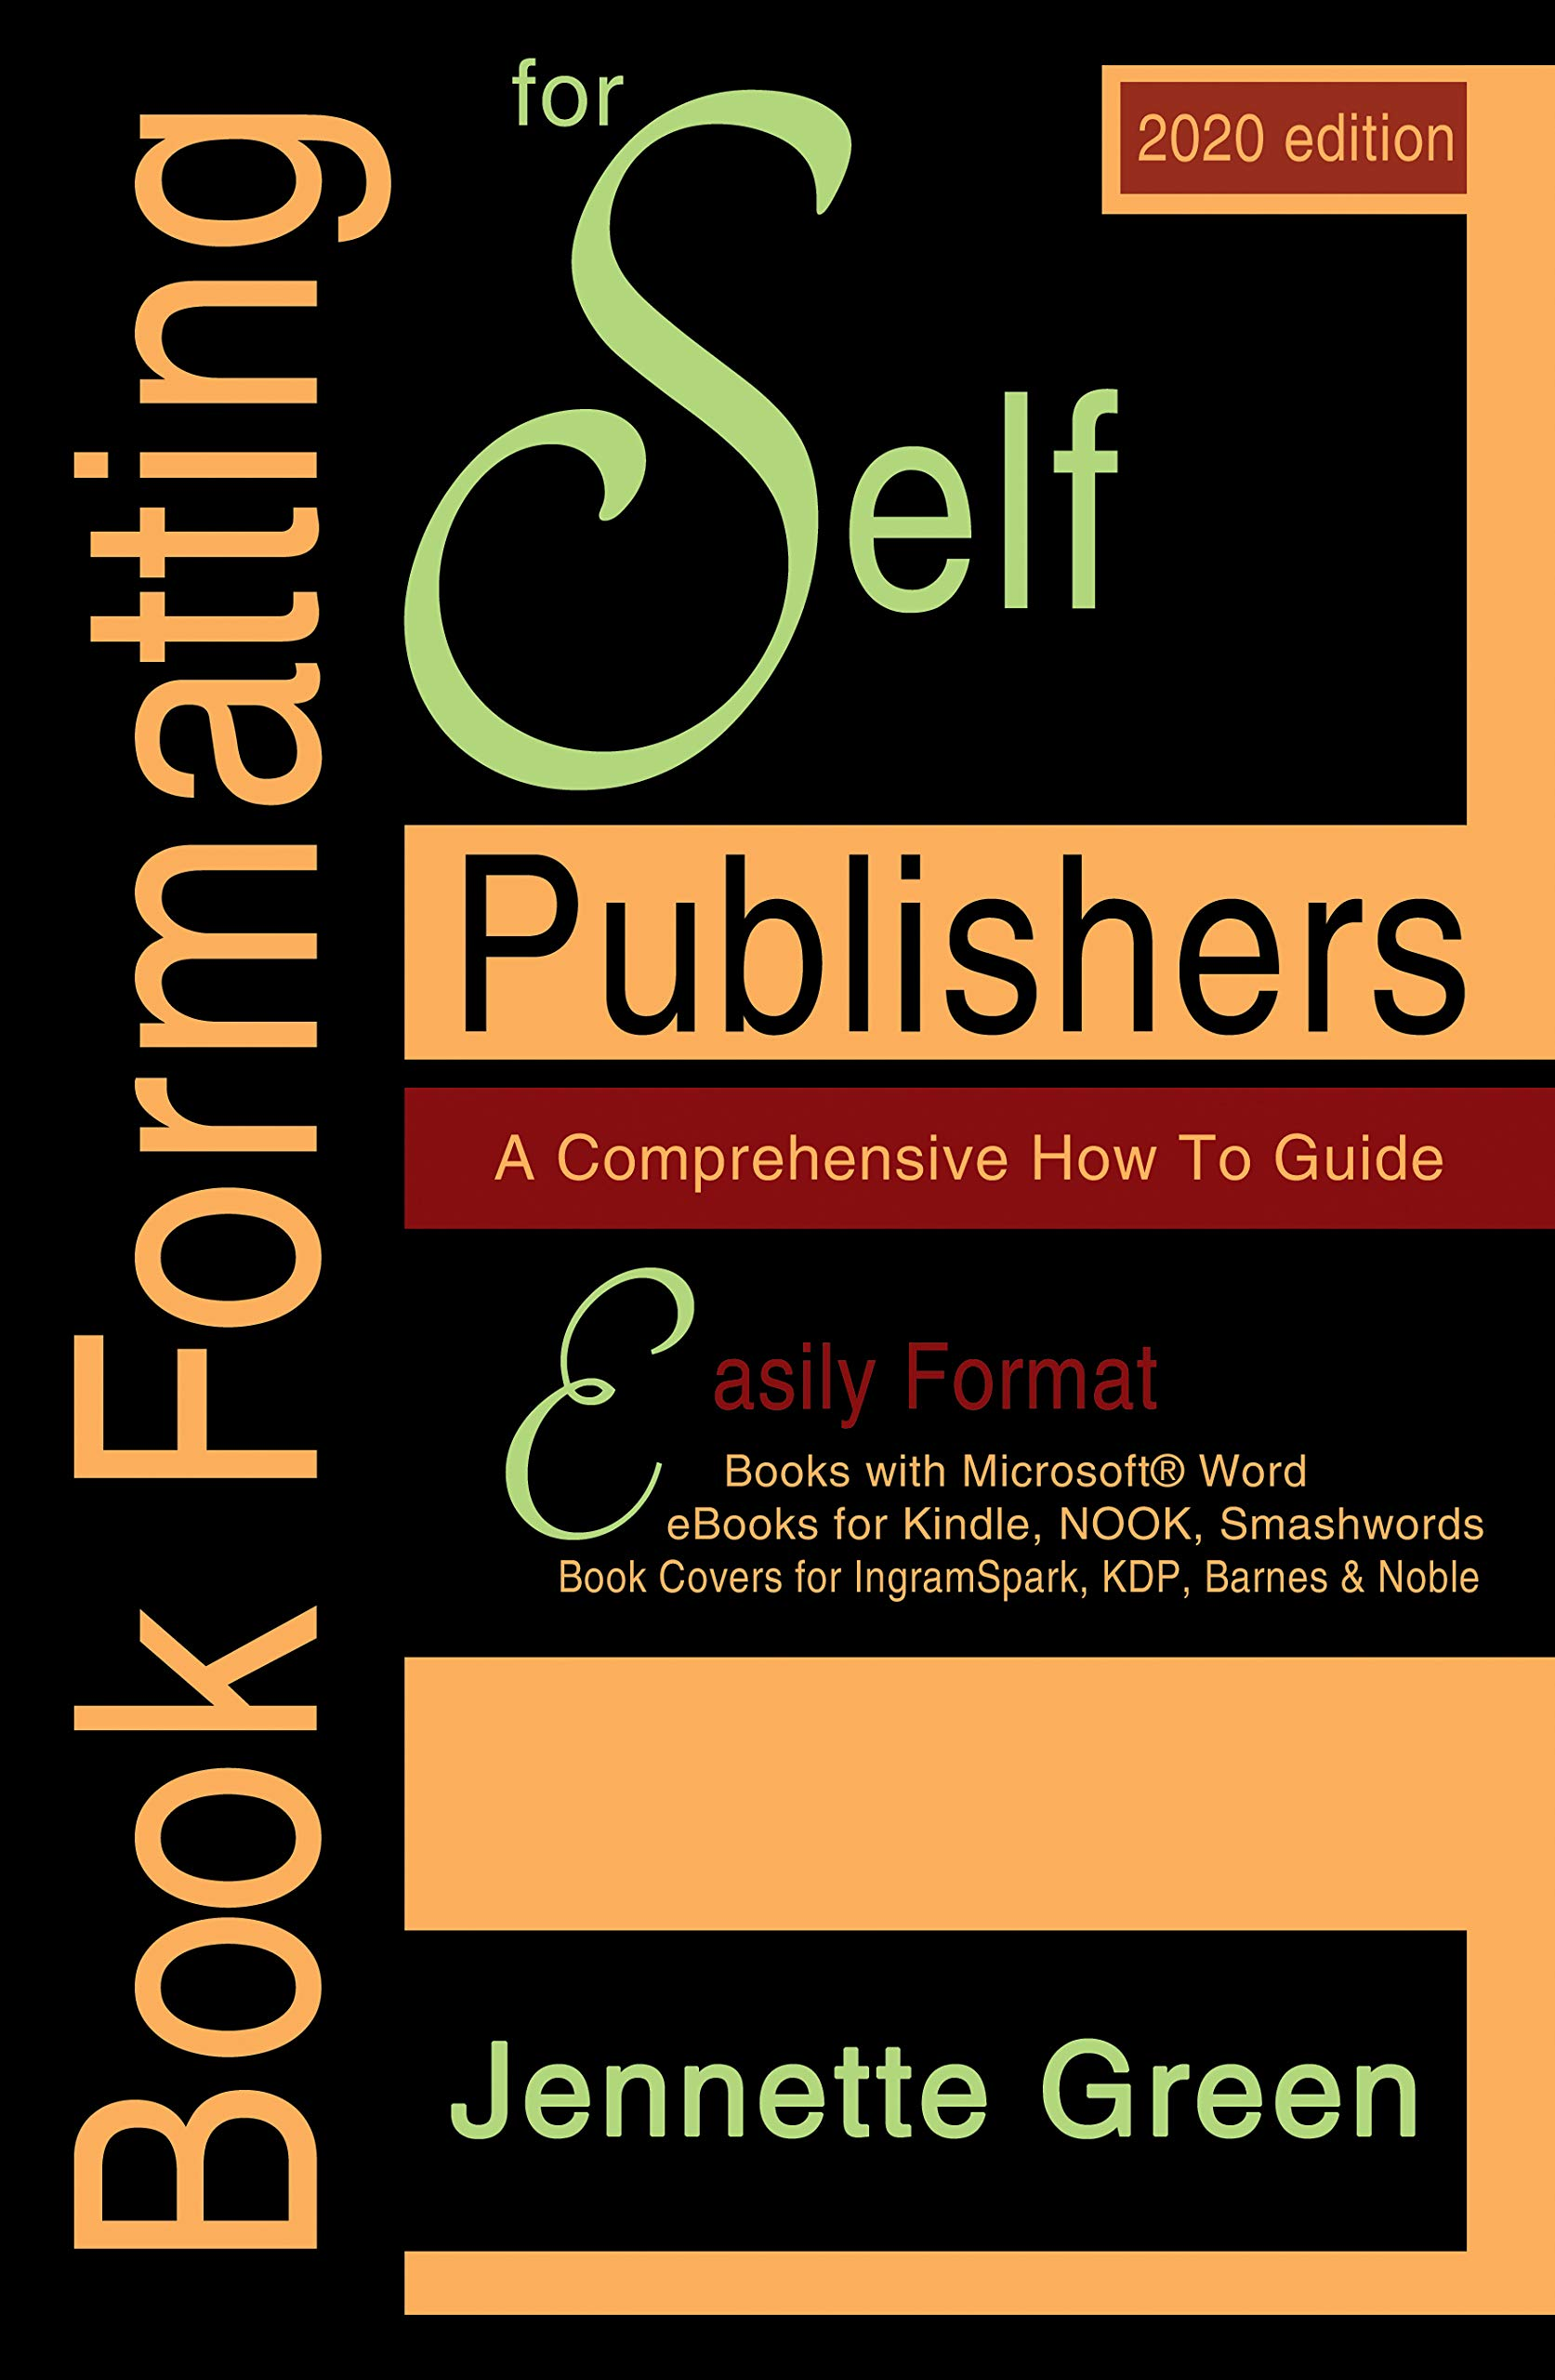 Book Formatting for Self-Publishers, a Comprehensive How to Guide (2020 Edition for PC): Easily Format Books with Microsoft Word, eBooks for Kindle, Nook, Smashwords, Book Covers for IngramSpark, KDP